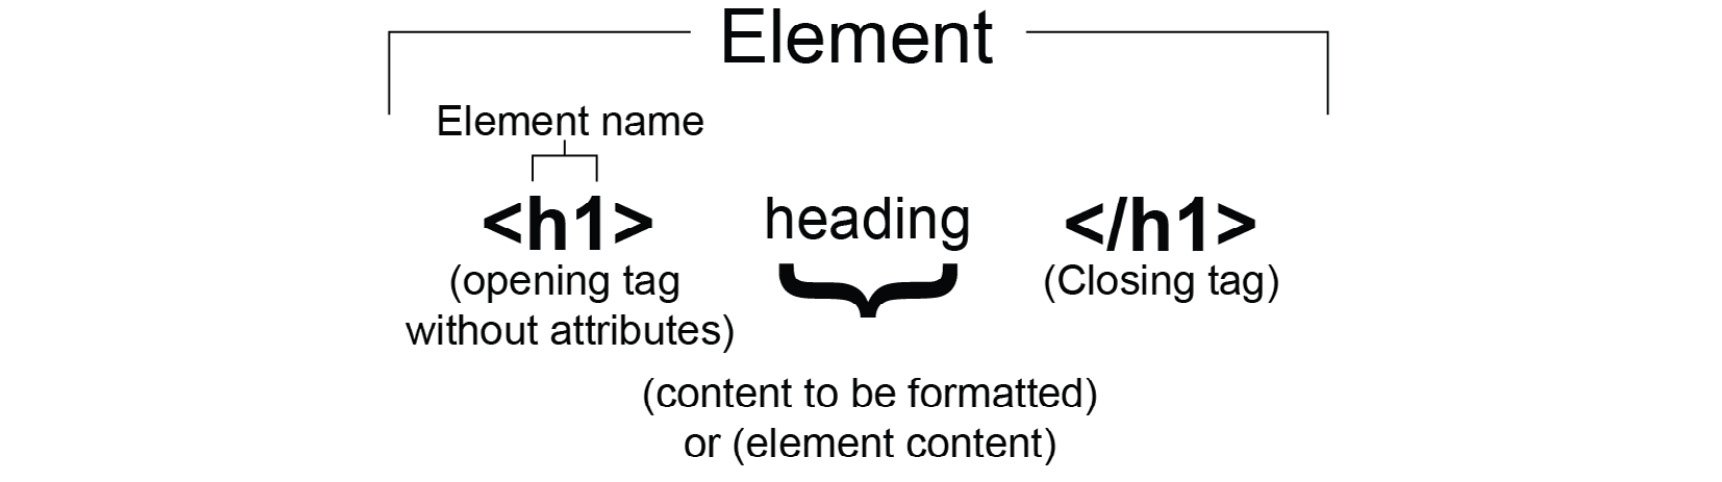 Figure 1.3: HTML element representation without tag attributes